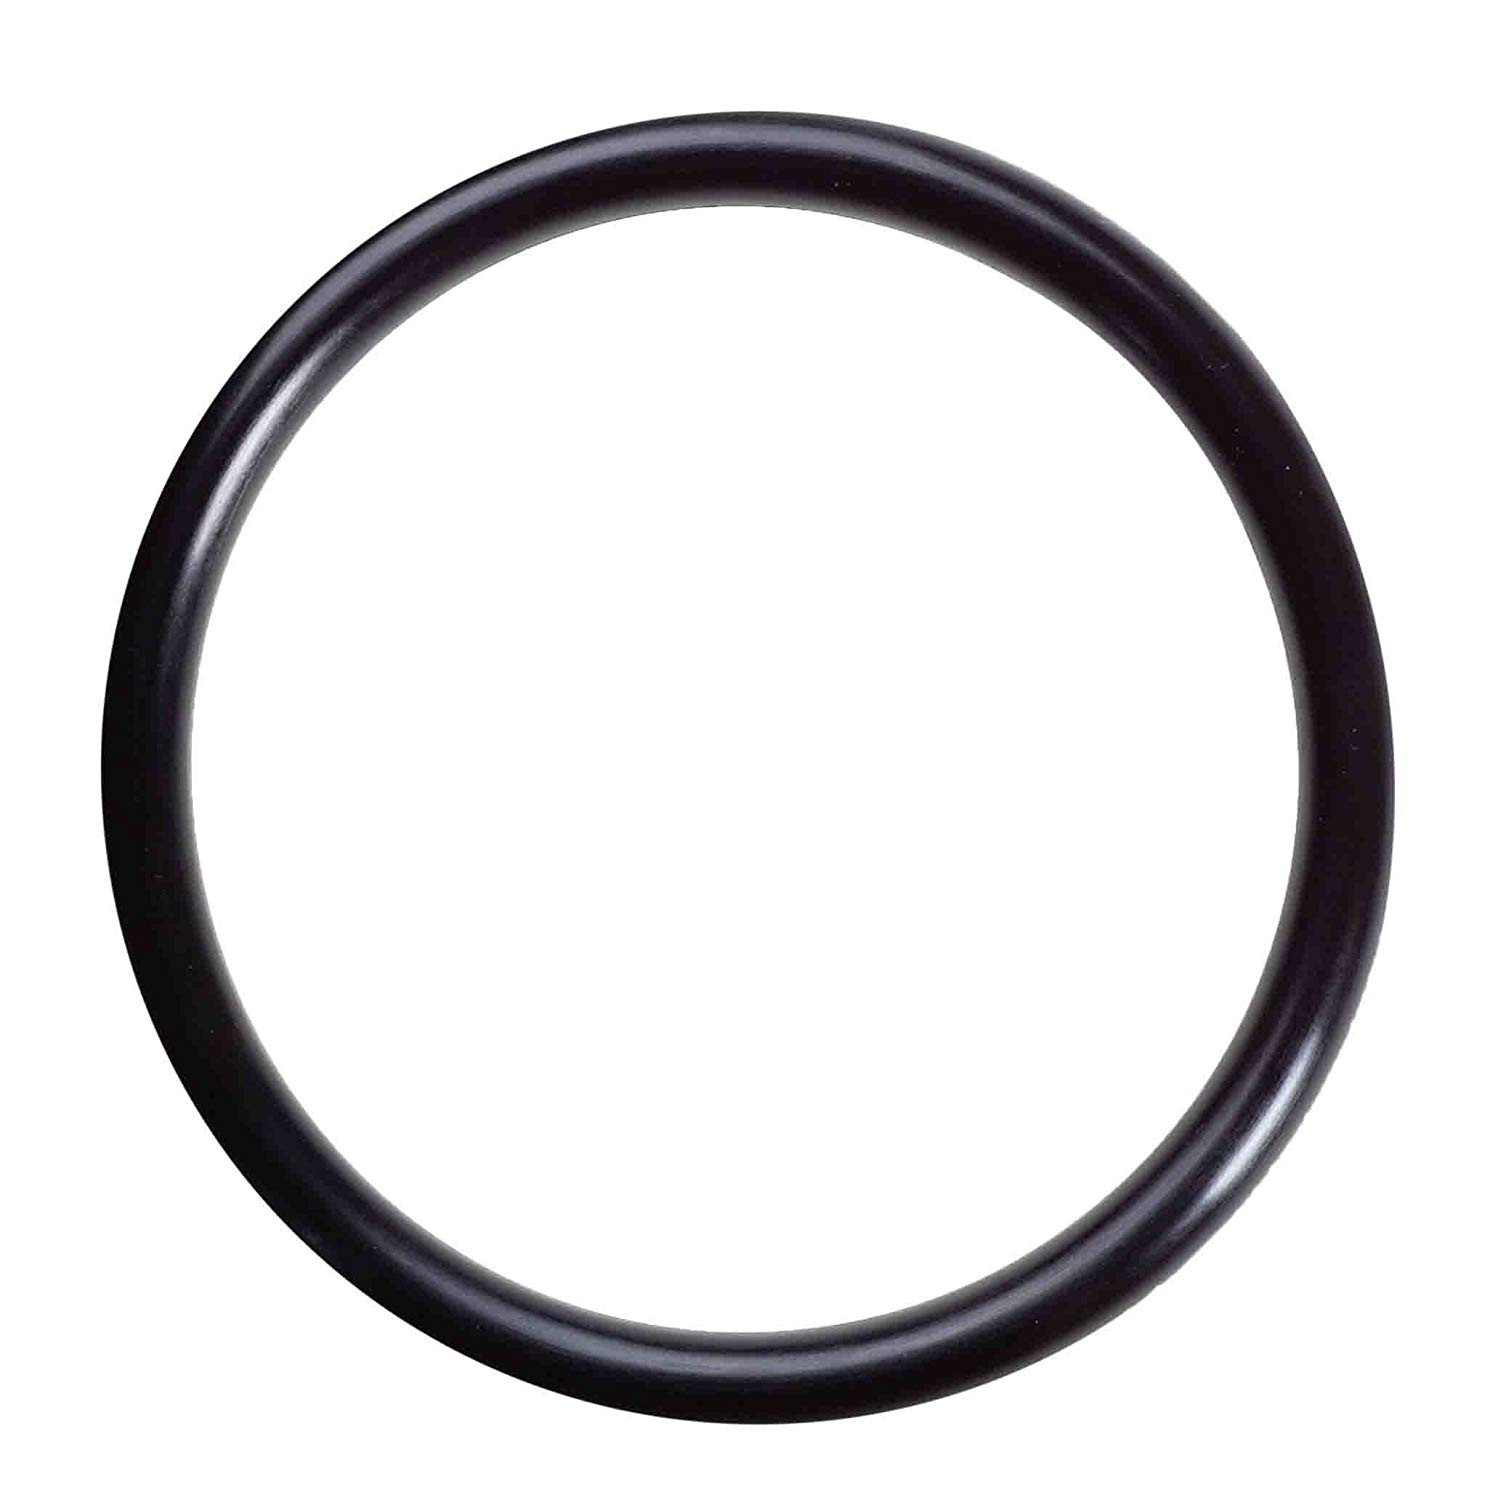 CAMPBELL OR-WHDF150 REPLACEMENT O-RING